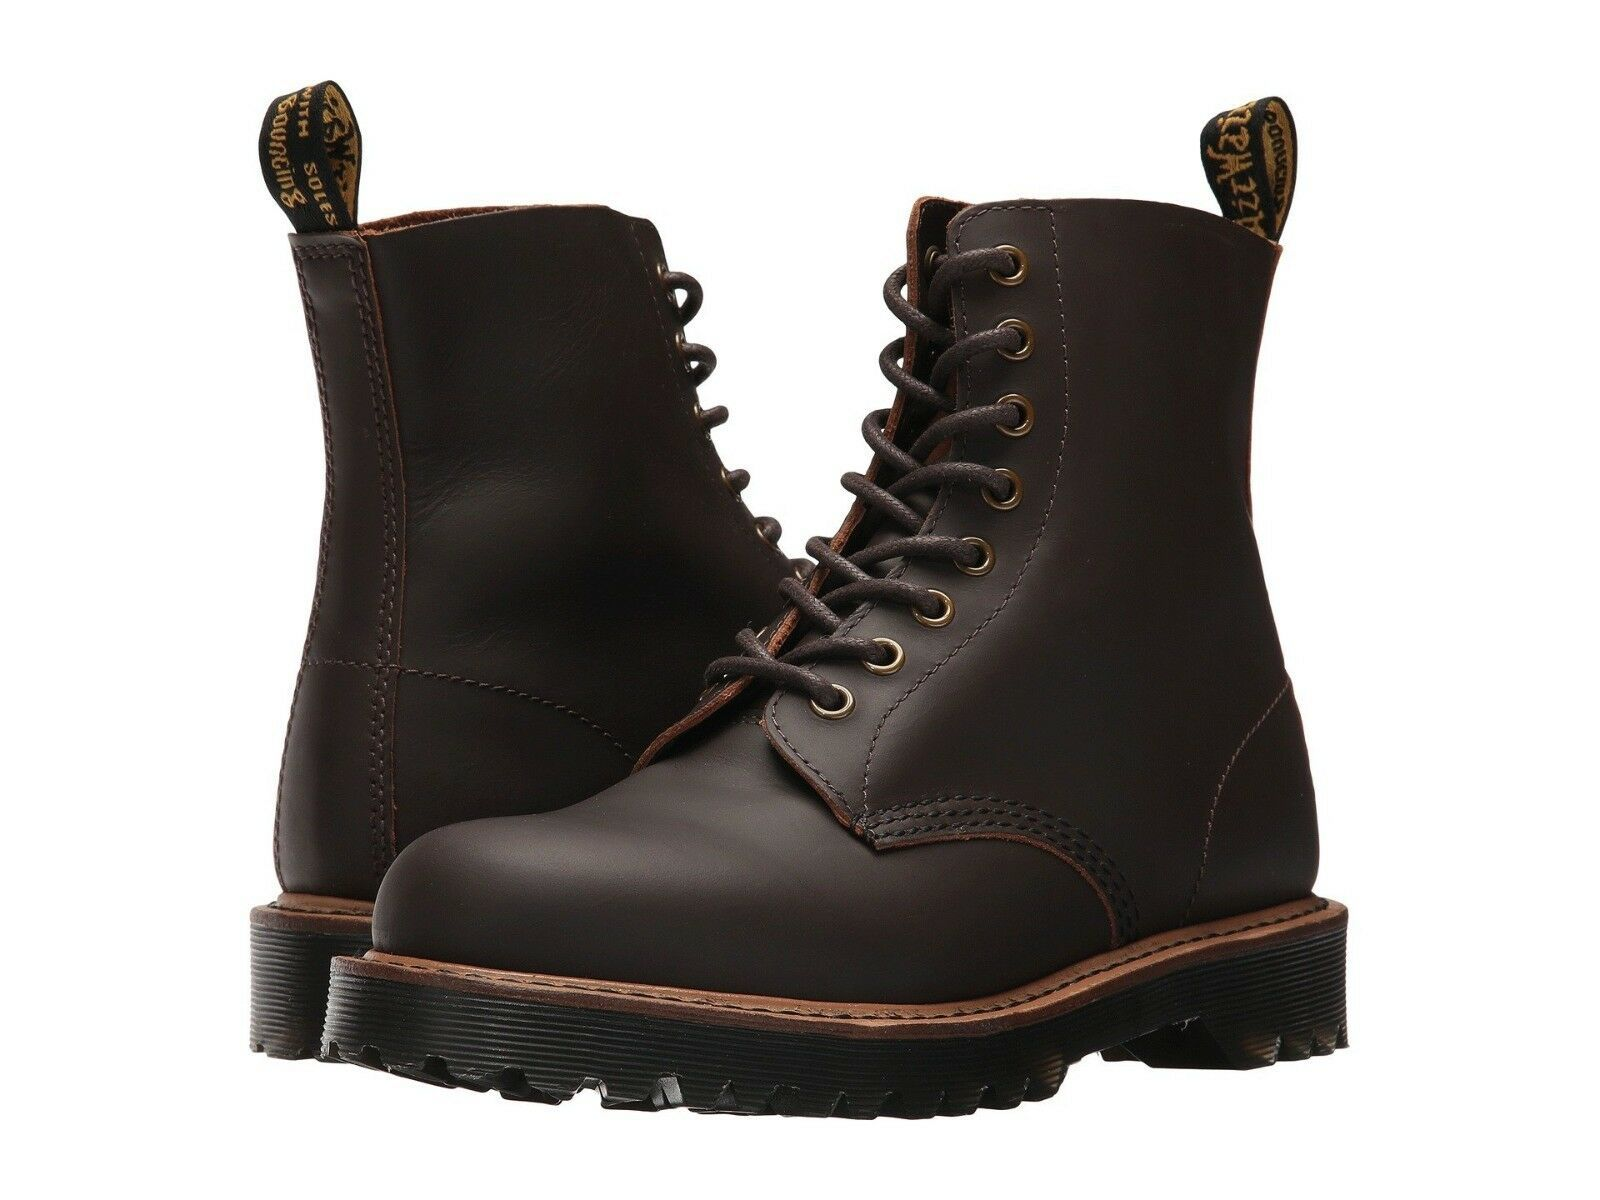 Primary image for Women's Dr. Martens 1460 Pascal II 8-Eye Boots, 22558201 Size 11 US Drk Brown